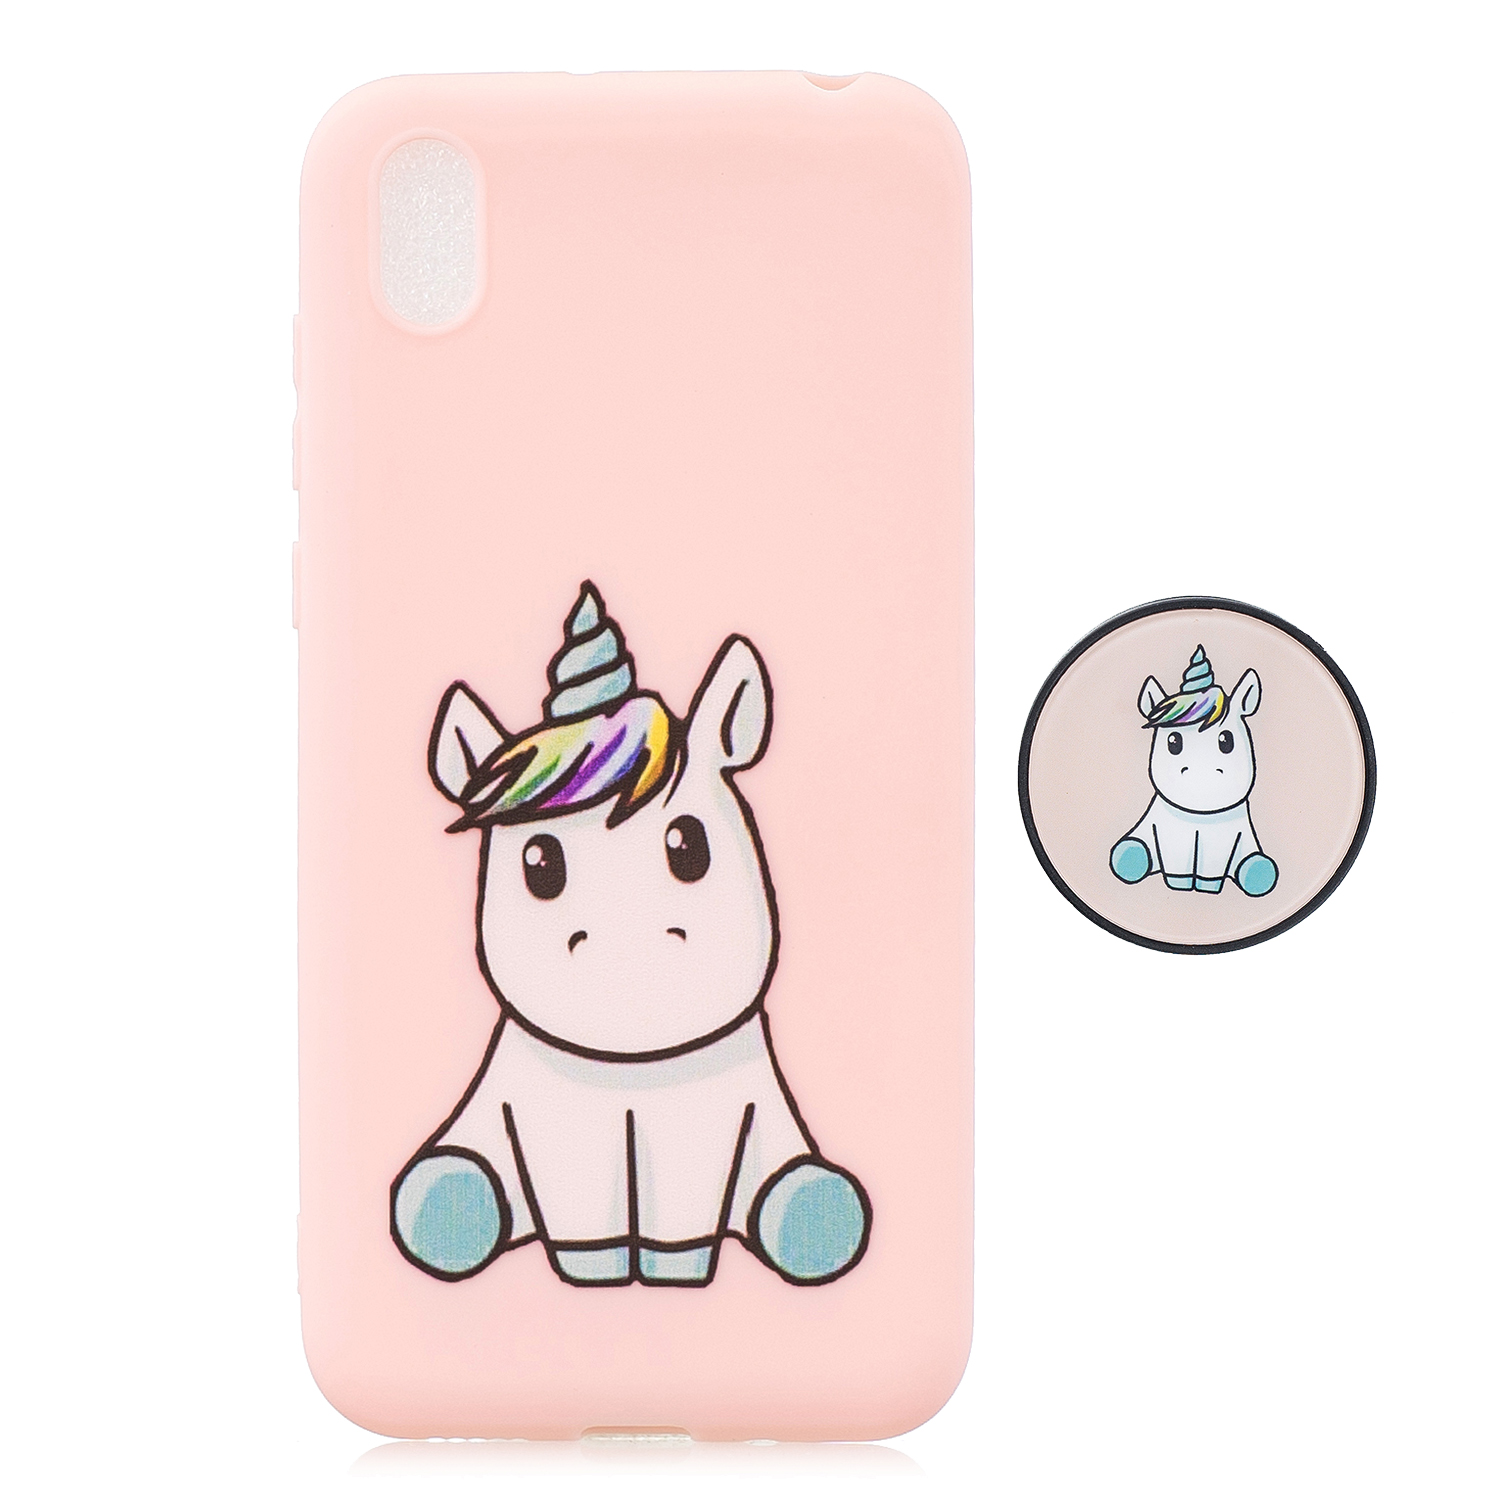 For HUAWEI Y5 2019  Lightweight Soft TPU Phone Case Pure Color Phone Cover Cute Cartoon Phone Case with Matching Pattern Adjustable Bracket 6